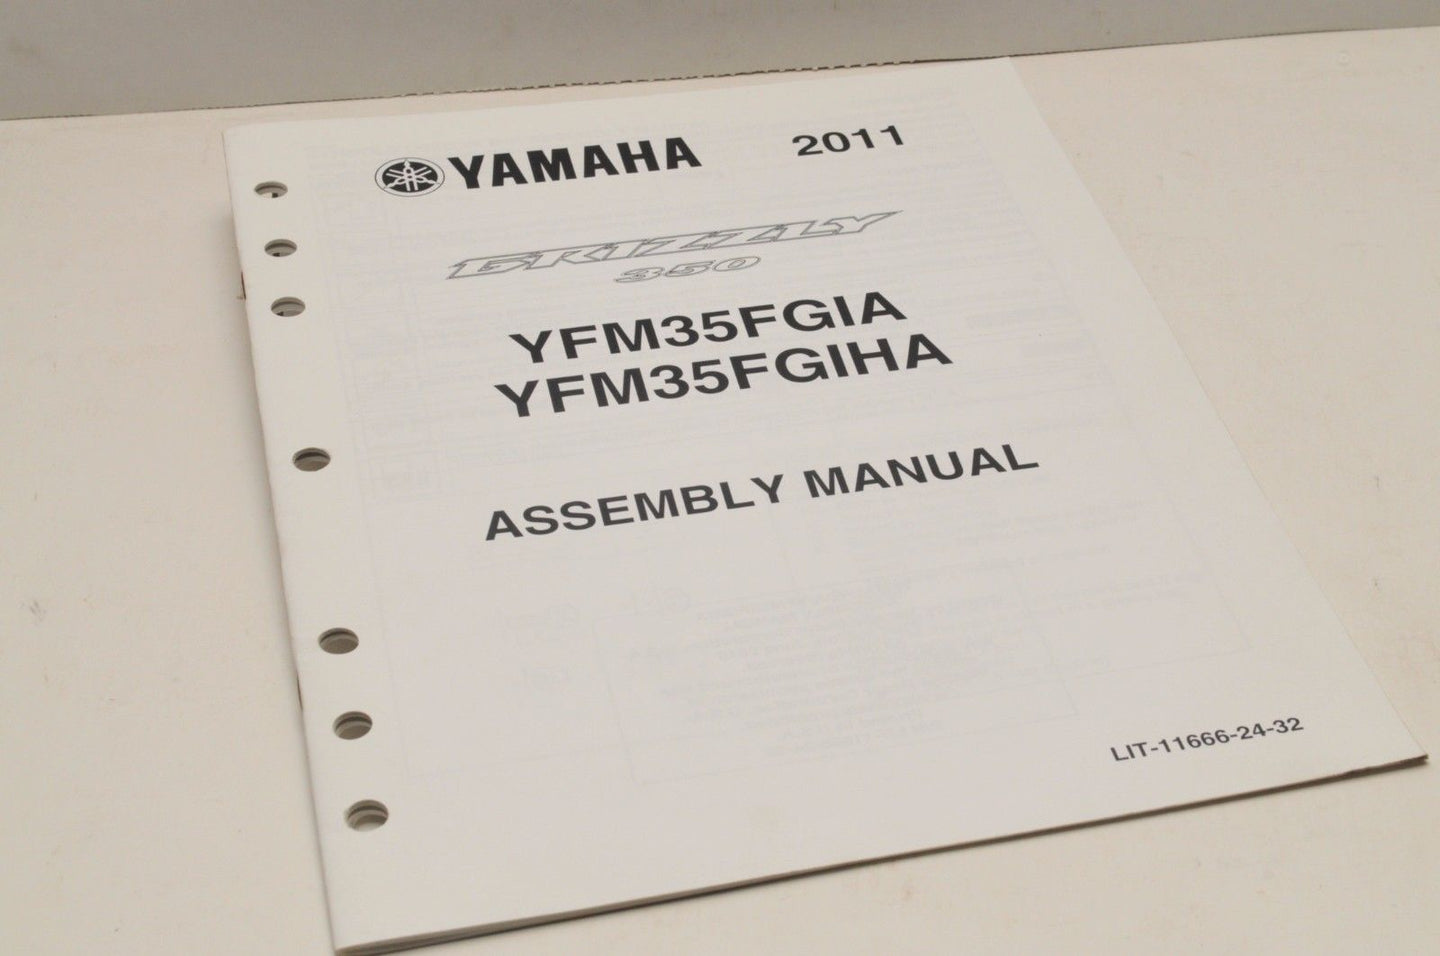 Genuine Yamaha ASSEMBLY SETUP MANUAL YFM35FGIA GRIZZLY 350 2011 LIT-11666-24-32